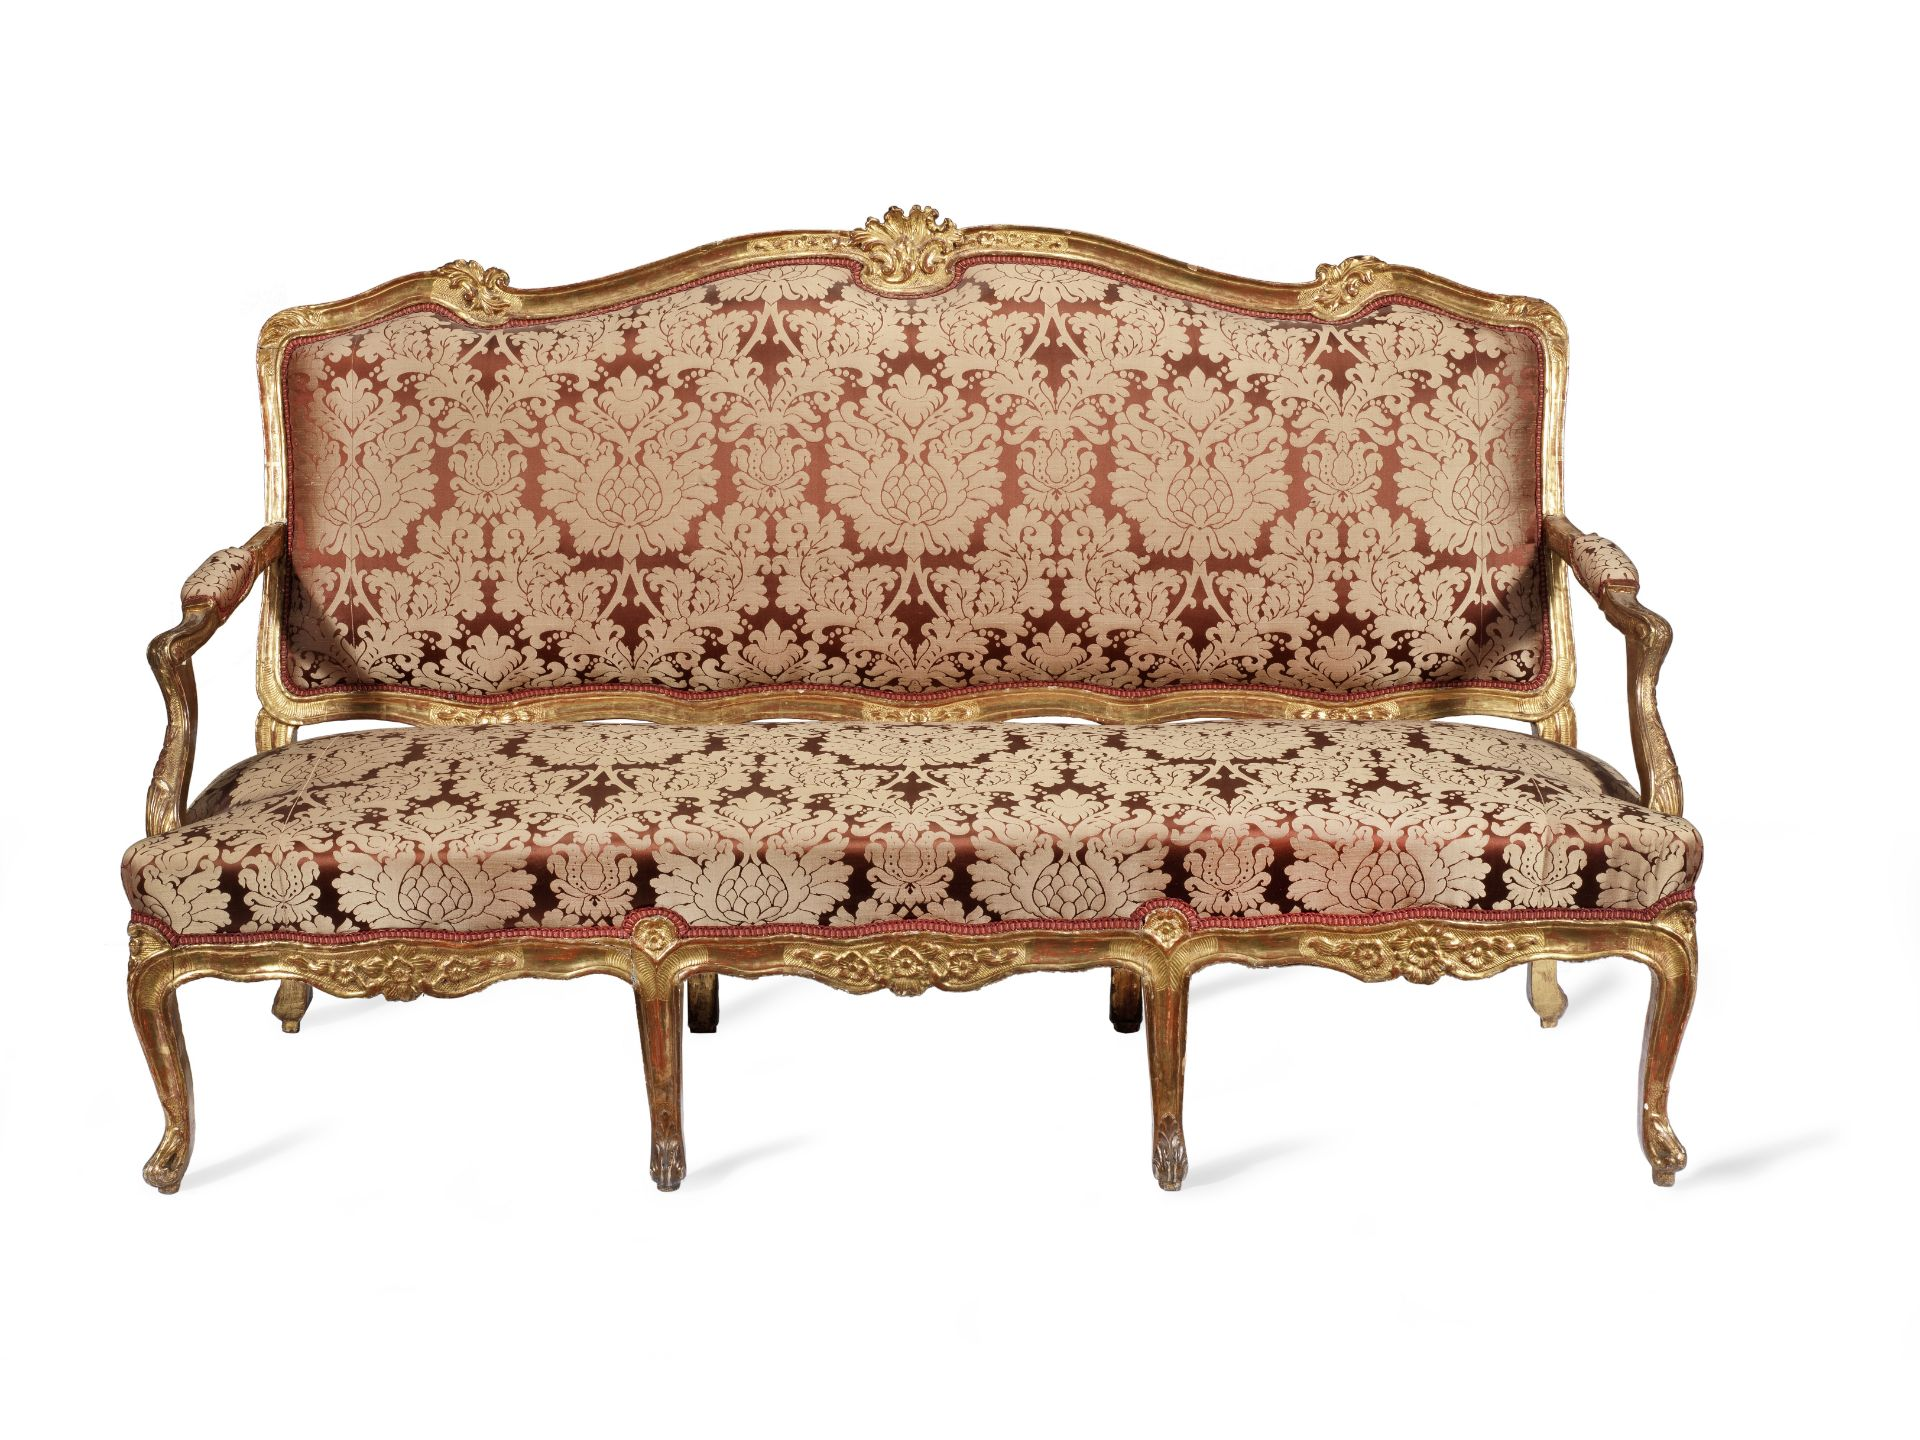 Los 91 - A Napoleon III giltwood canape in the Louis XV style